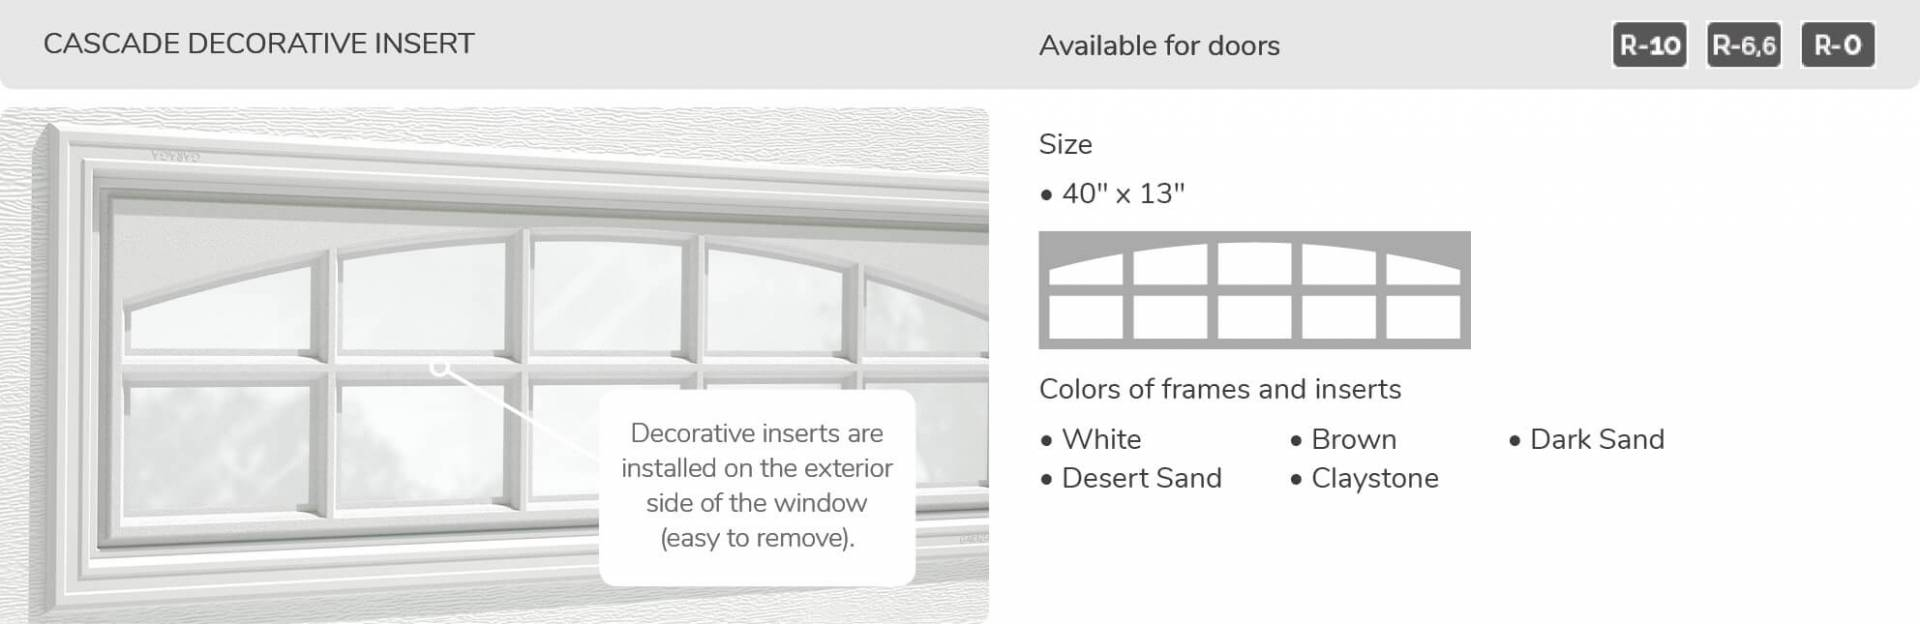 "Cascade Decorative Insert, 40"" x 13"", available for doors R-10, R-6.6, R-0"